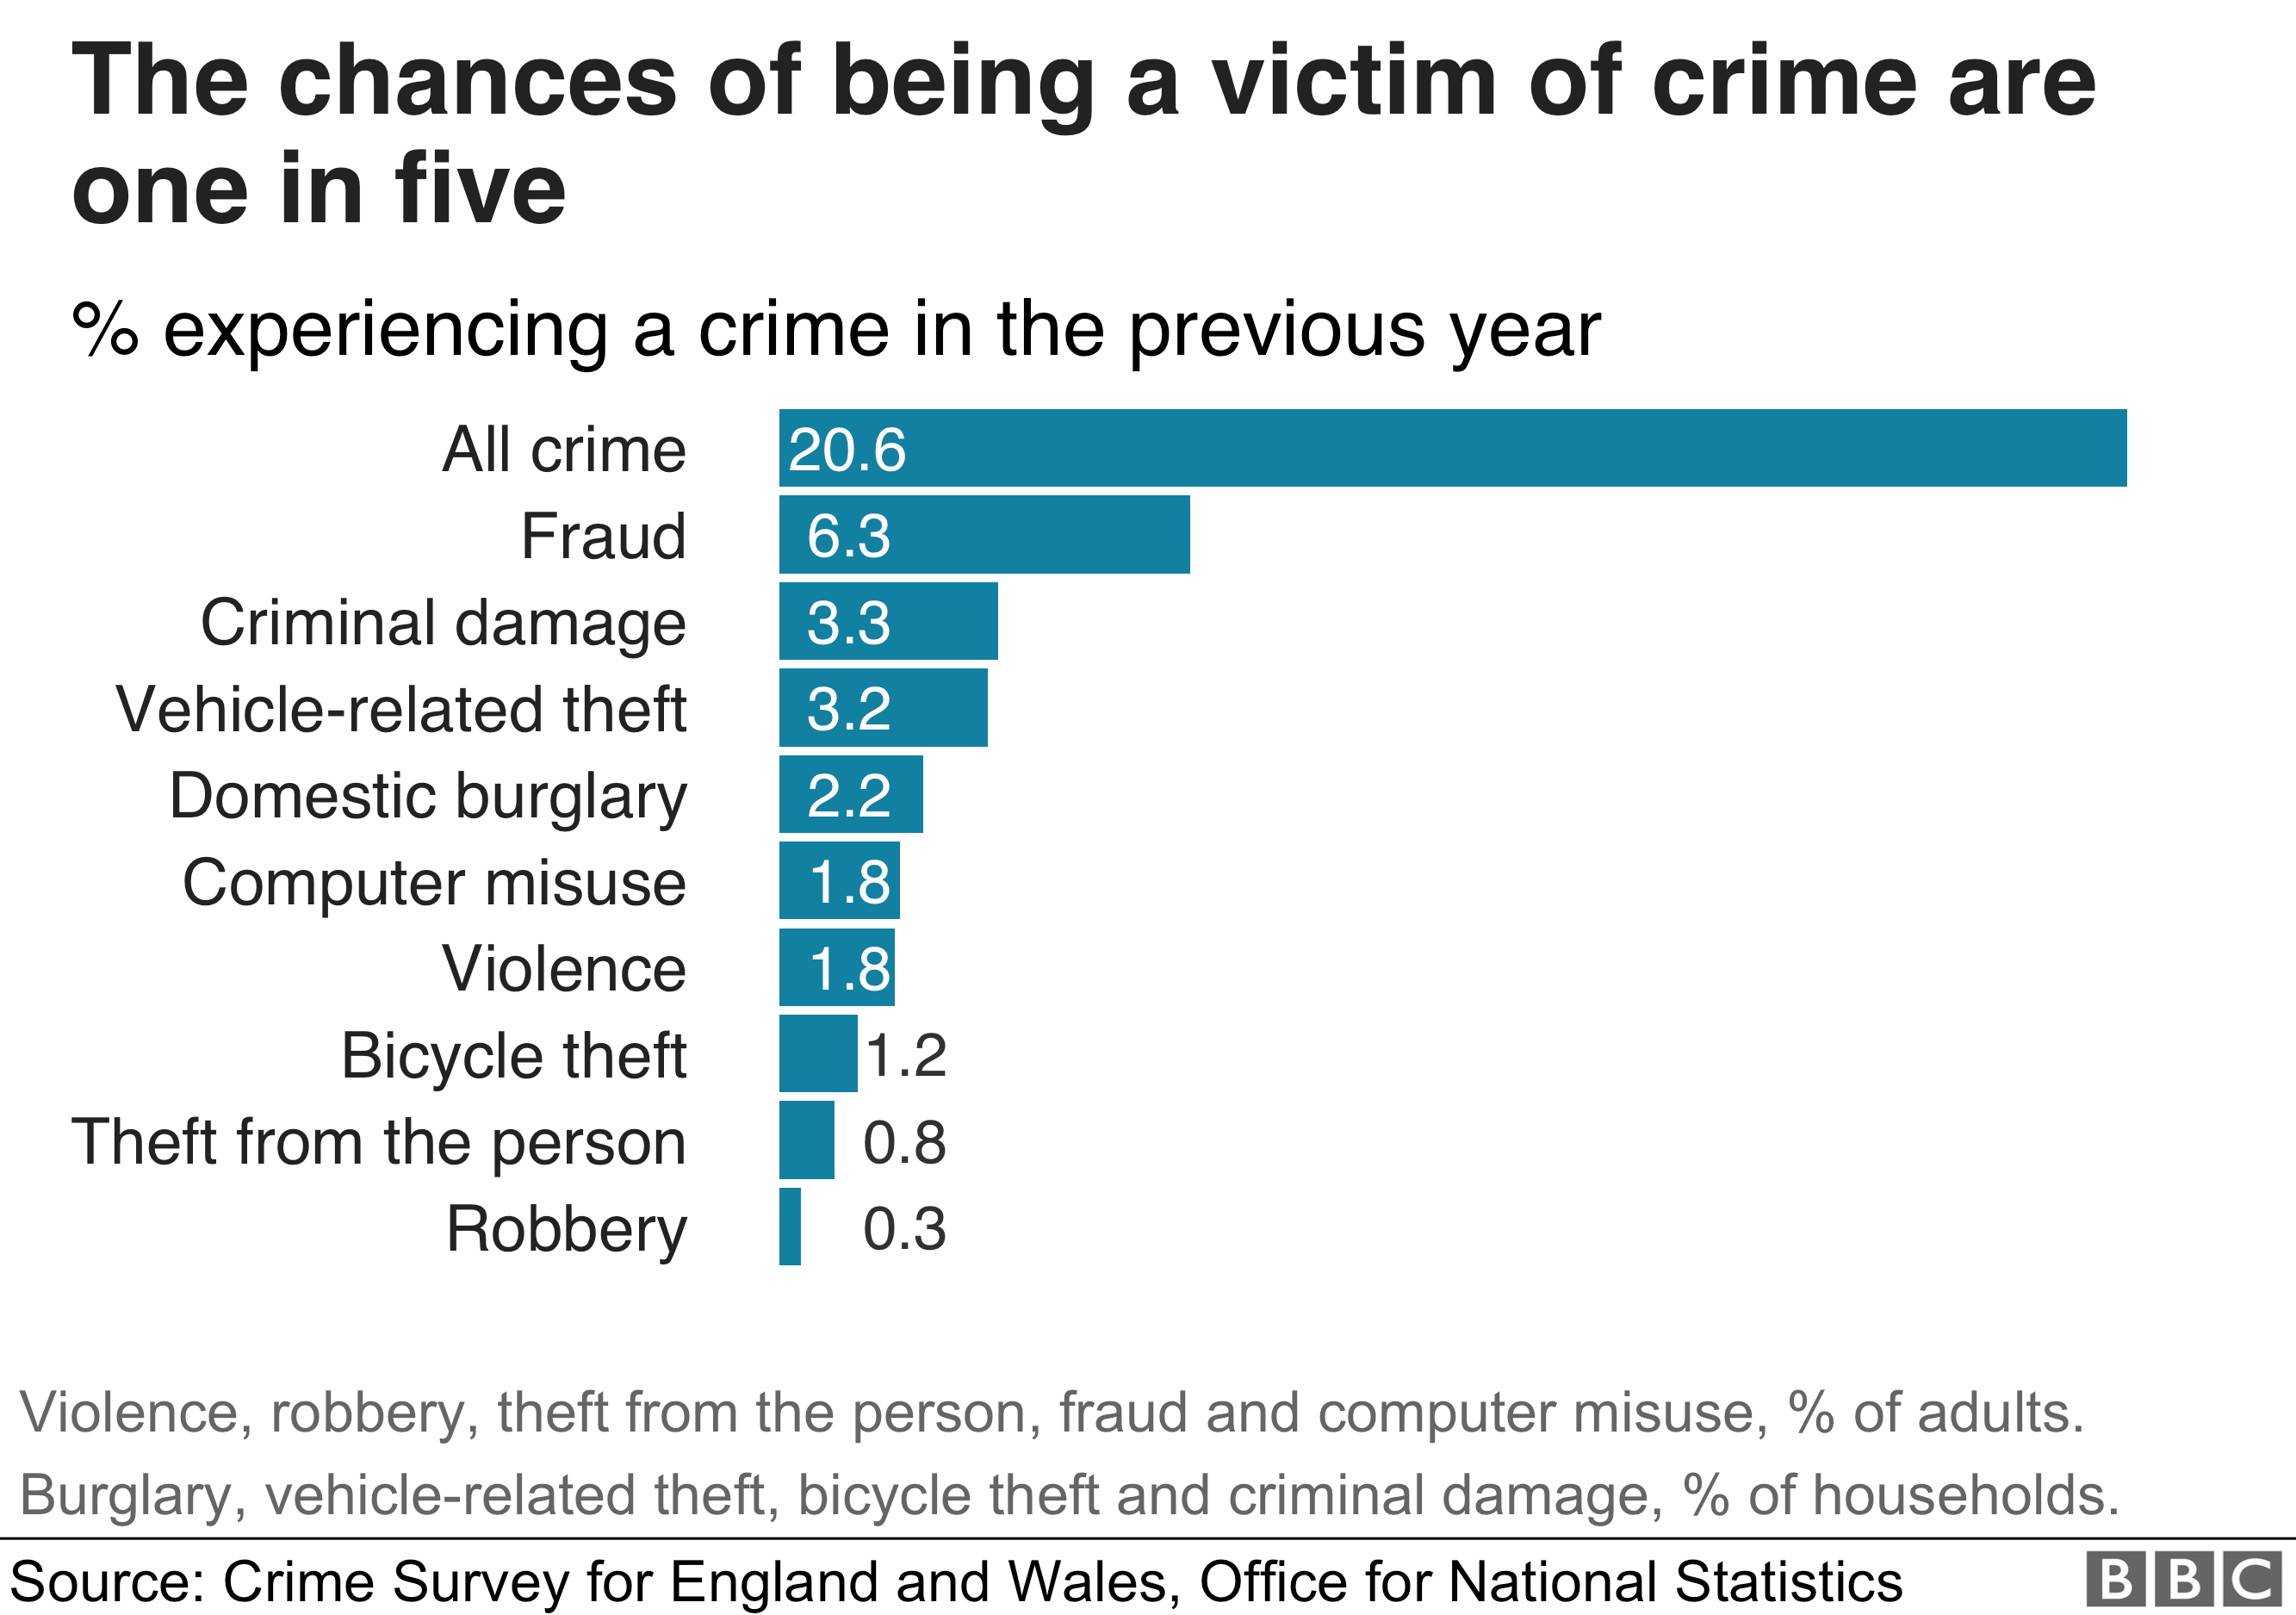 A chart showing the likelihood of being a victim of crime